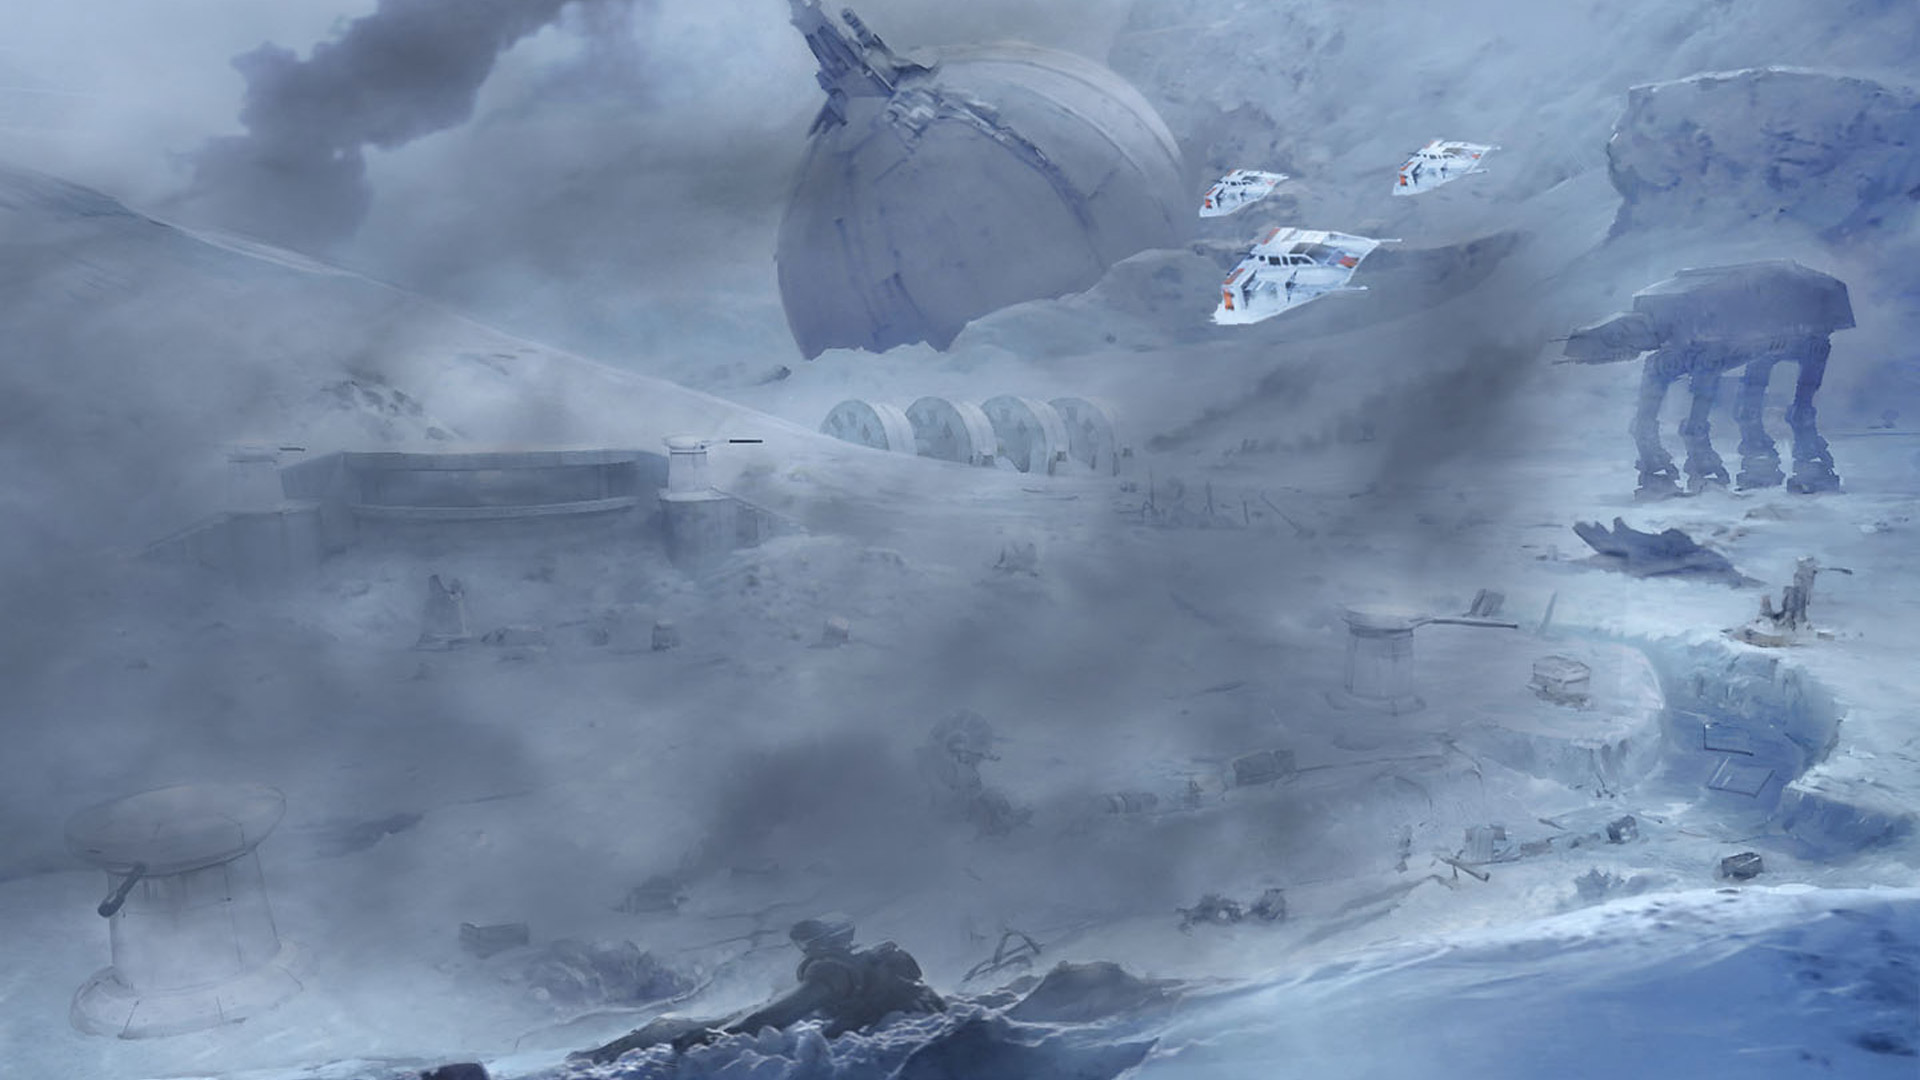 Free Star Wars Battlefront Renegade Squadron Wallpaper In 1920x1080